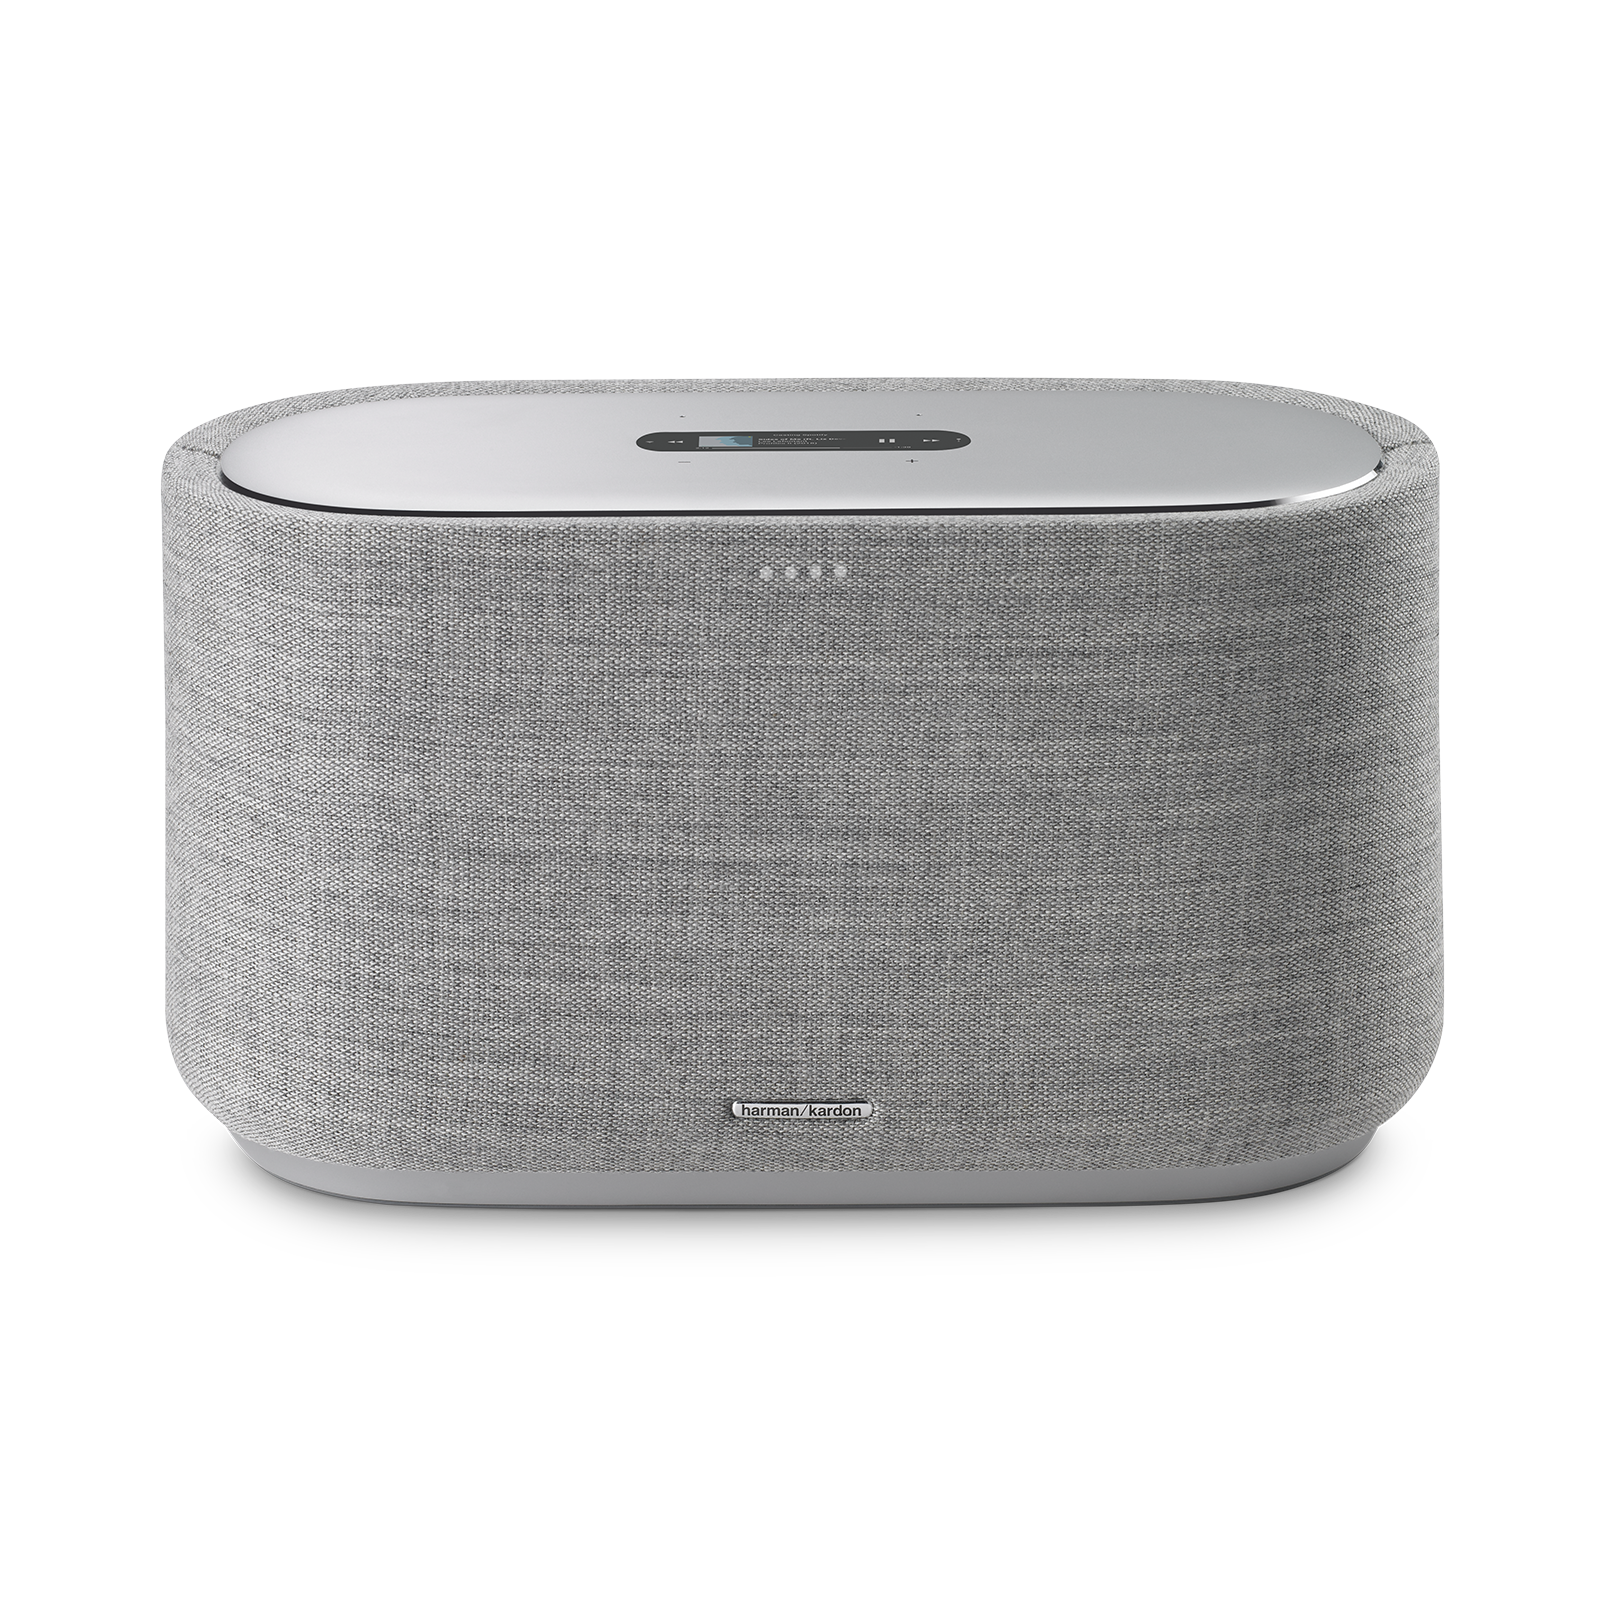 Harman Kardon Citation 500 - Grey - Large Tabletop Smart Home Loudspeaker System - Front